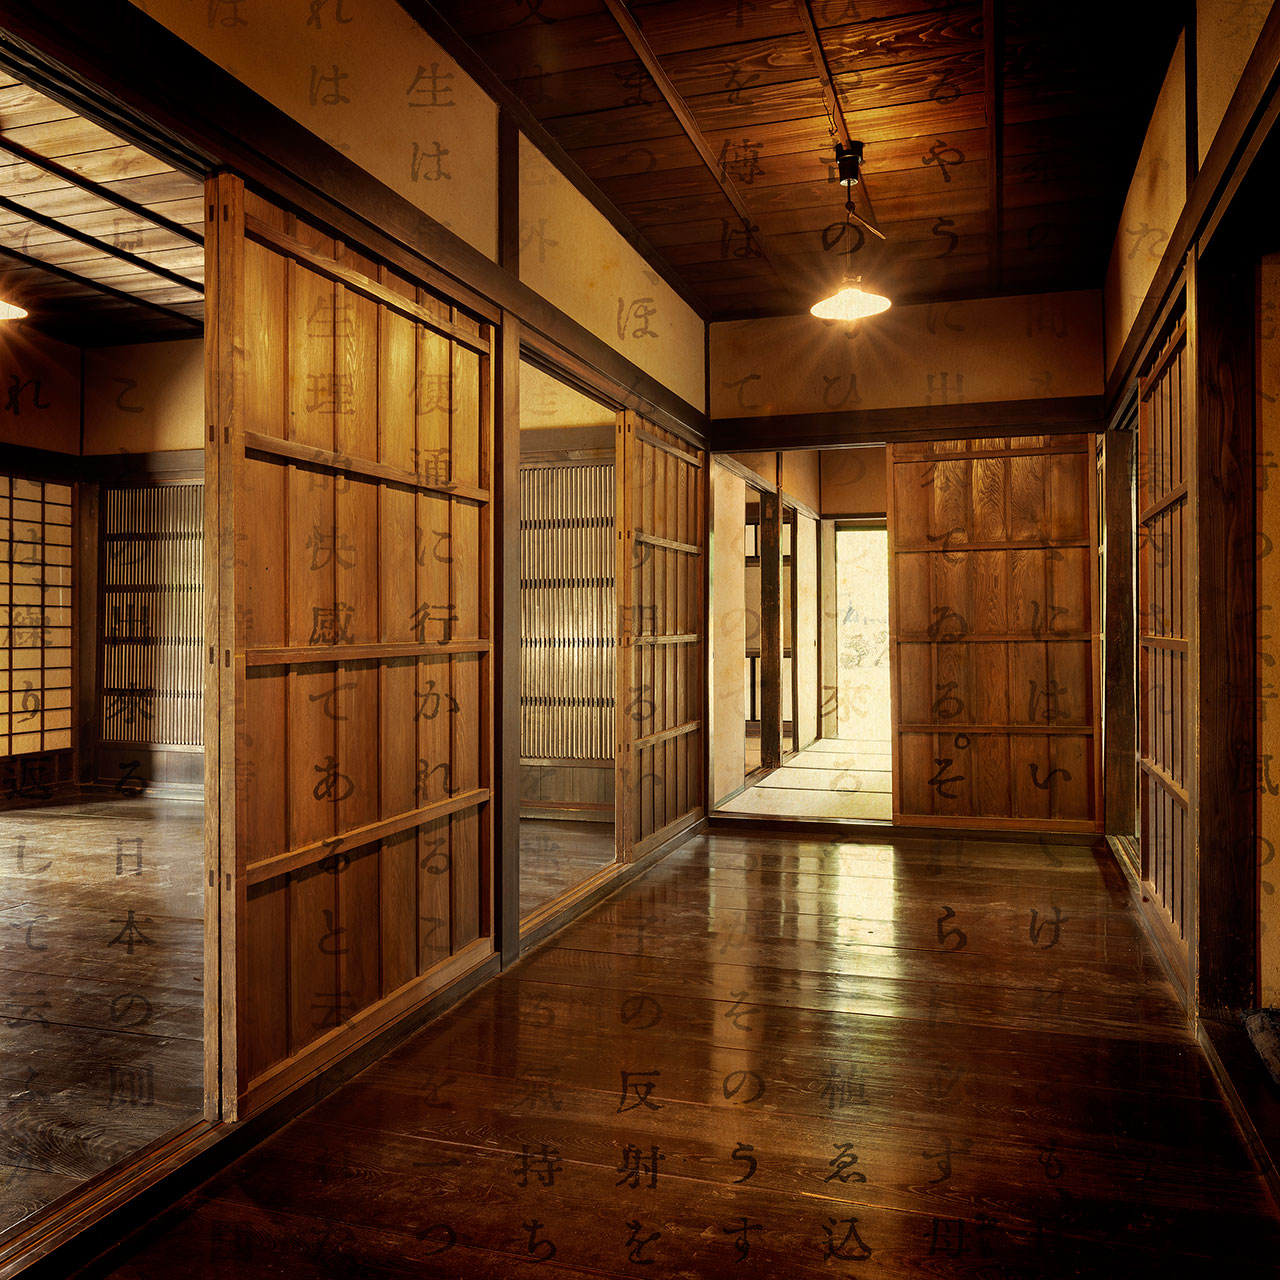 Inês d'Orey, Hachioji House, House of the Leader of the Hachioji Guards, 18th century. Transplanted House from Oiwakecho, restored in 1993. 80x80cm. Photographic Fine Art Print.